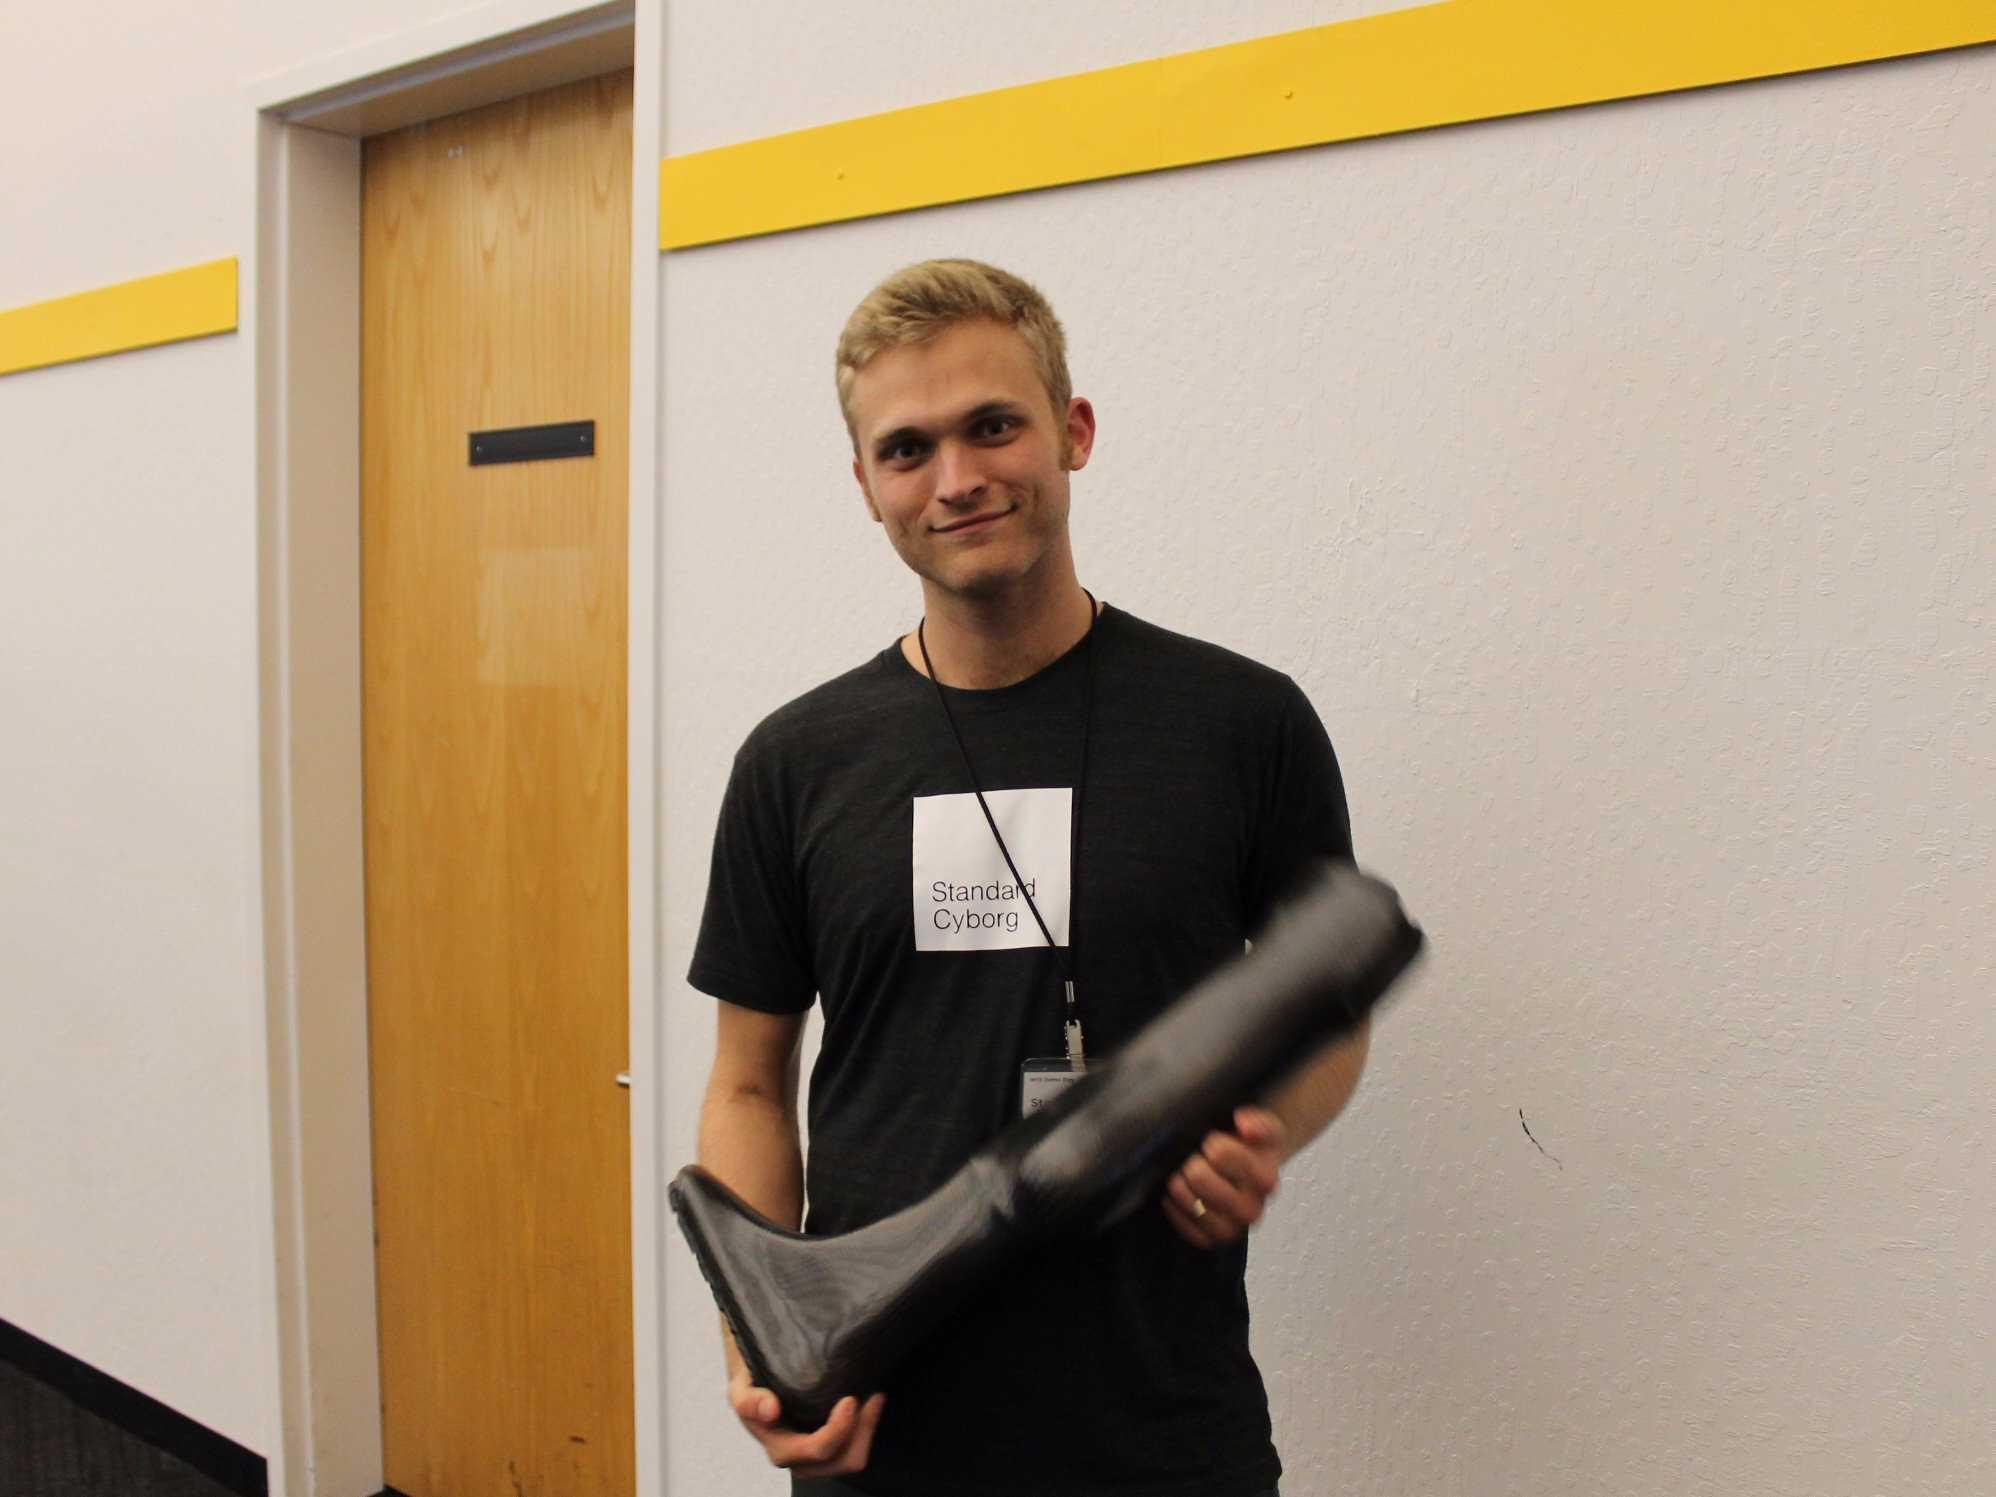 This founder had his leg amputated at age one. Now he's making artificial legs with 3D printers